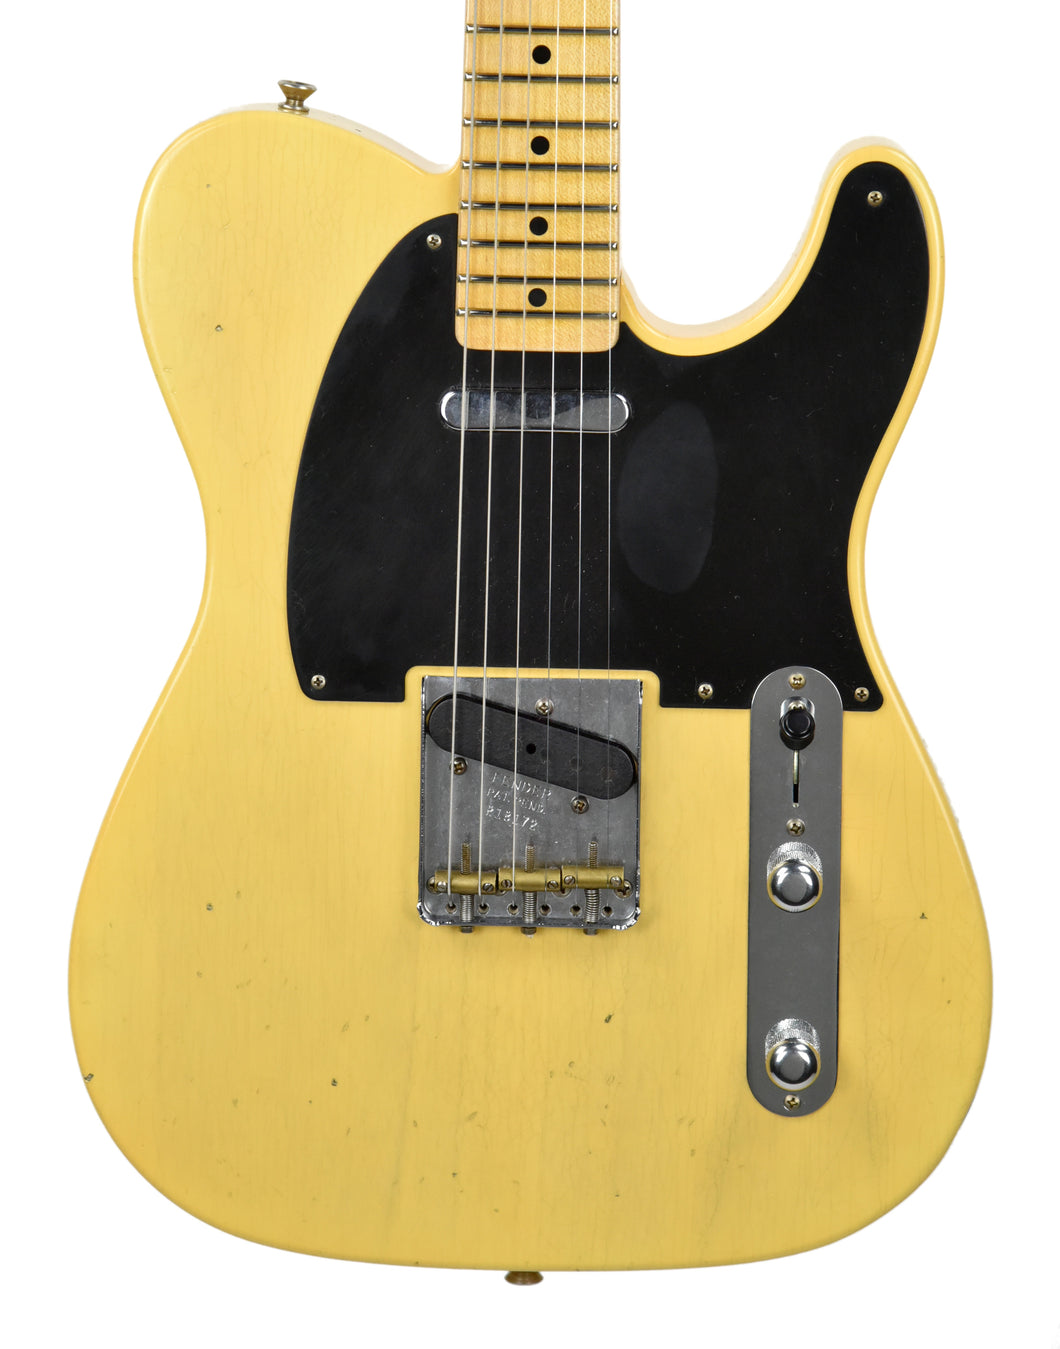 USED Fender Custom Shop 52 Telecaster Journeyman Relic Nocaster Blonde - The Music Gallery